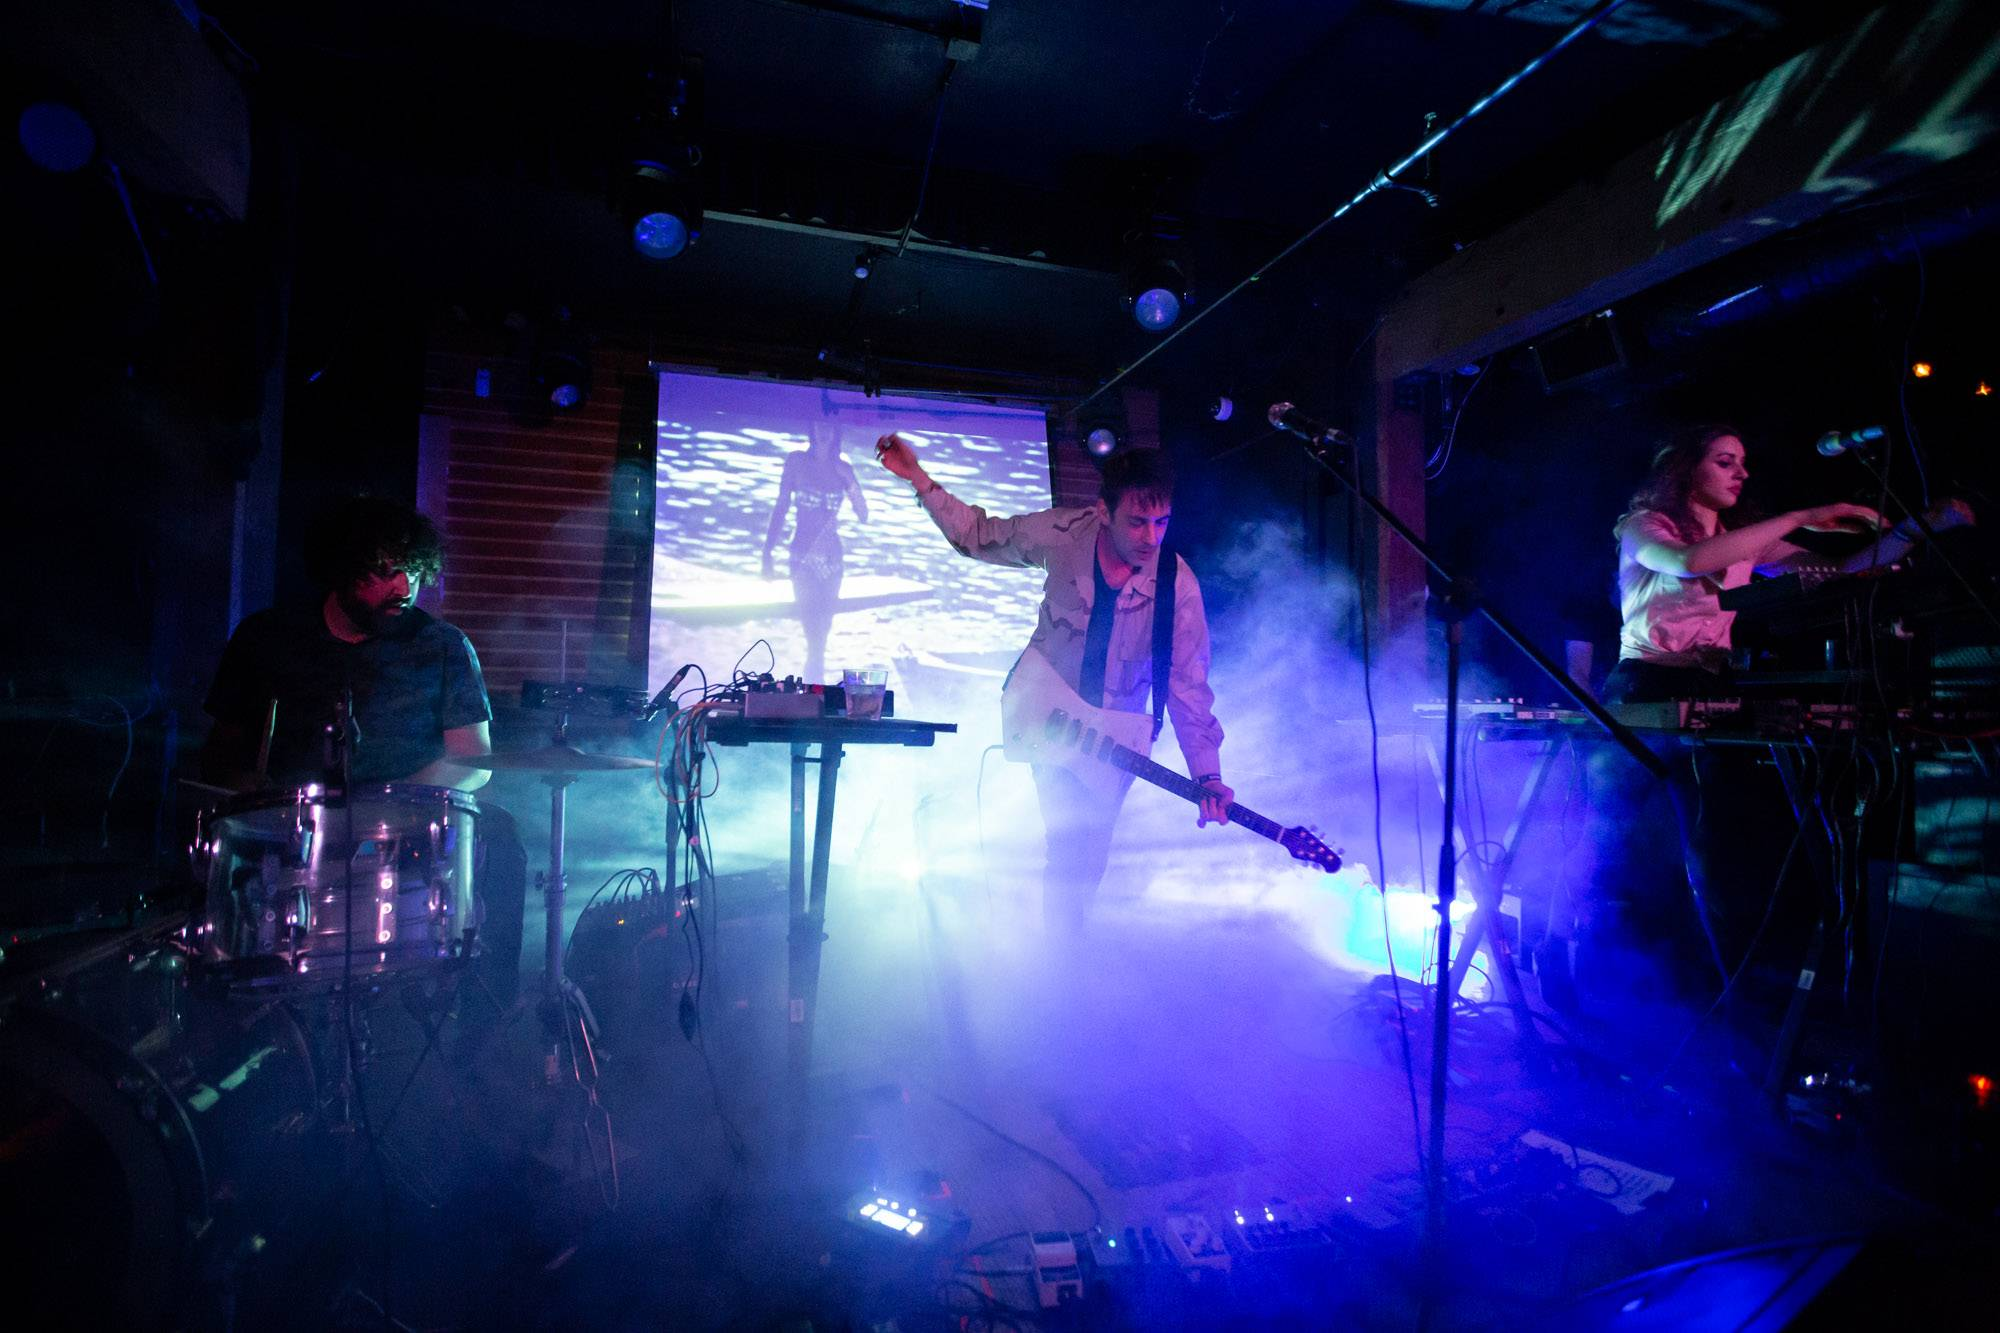 Operators Performing Handsome Furs at Fortune Sound Club, Vancouver, Jun 7 2019. Kirk Chantraine photo.